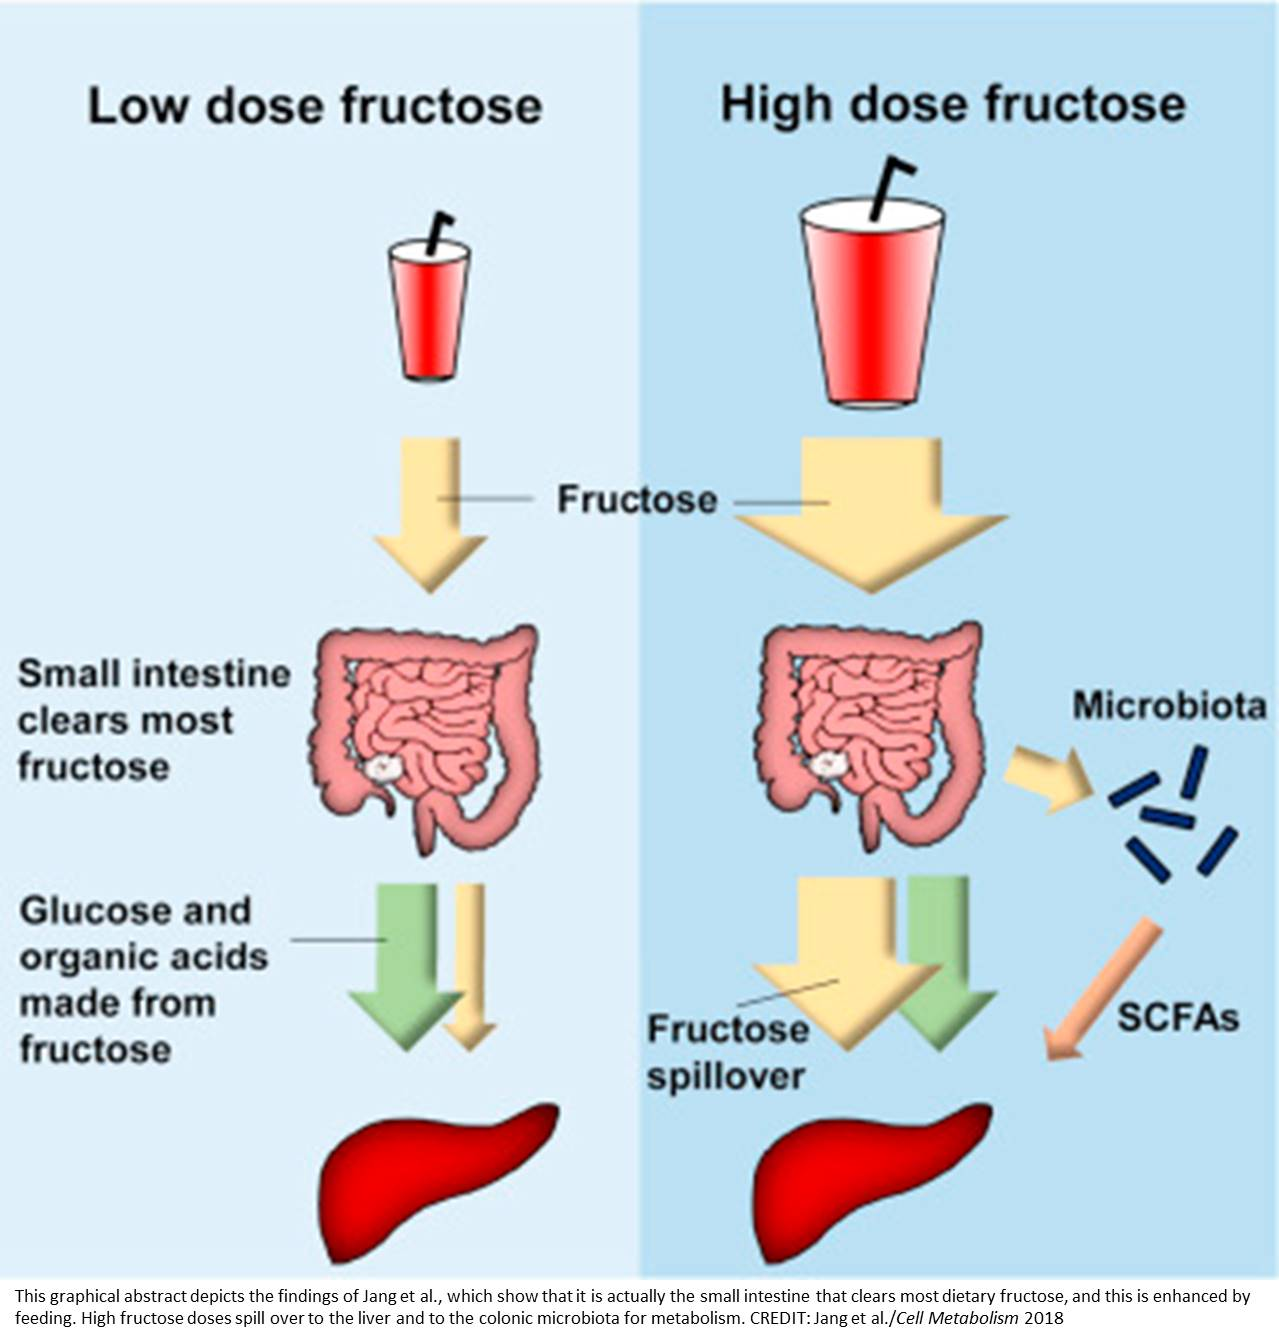 Its small intestine, not liver, clears dietary fructose